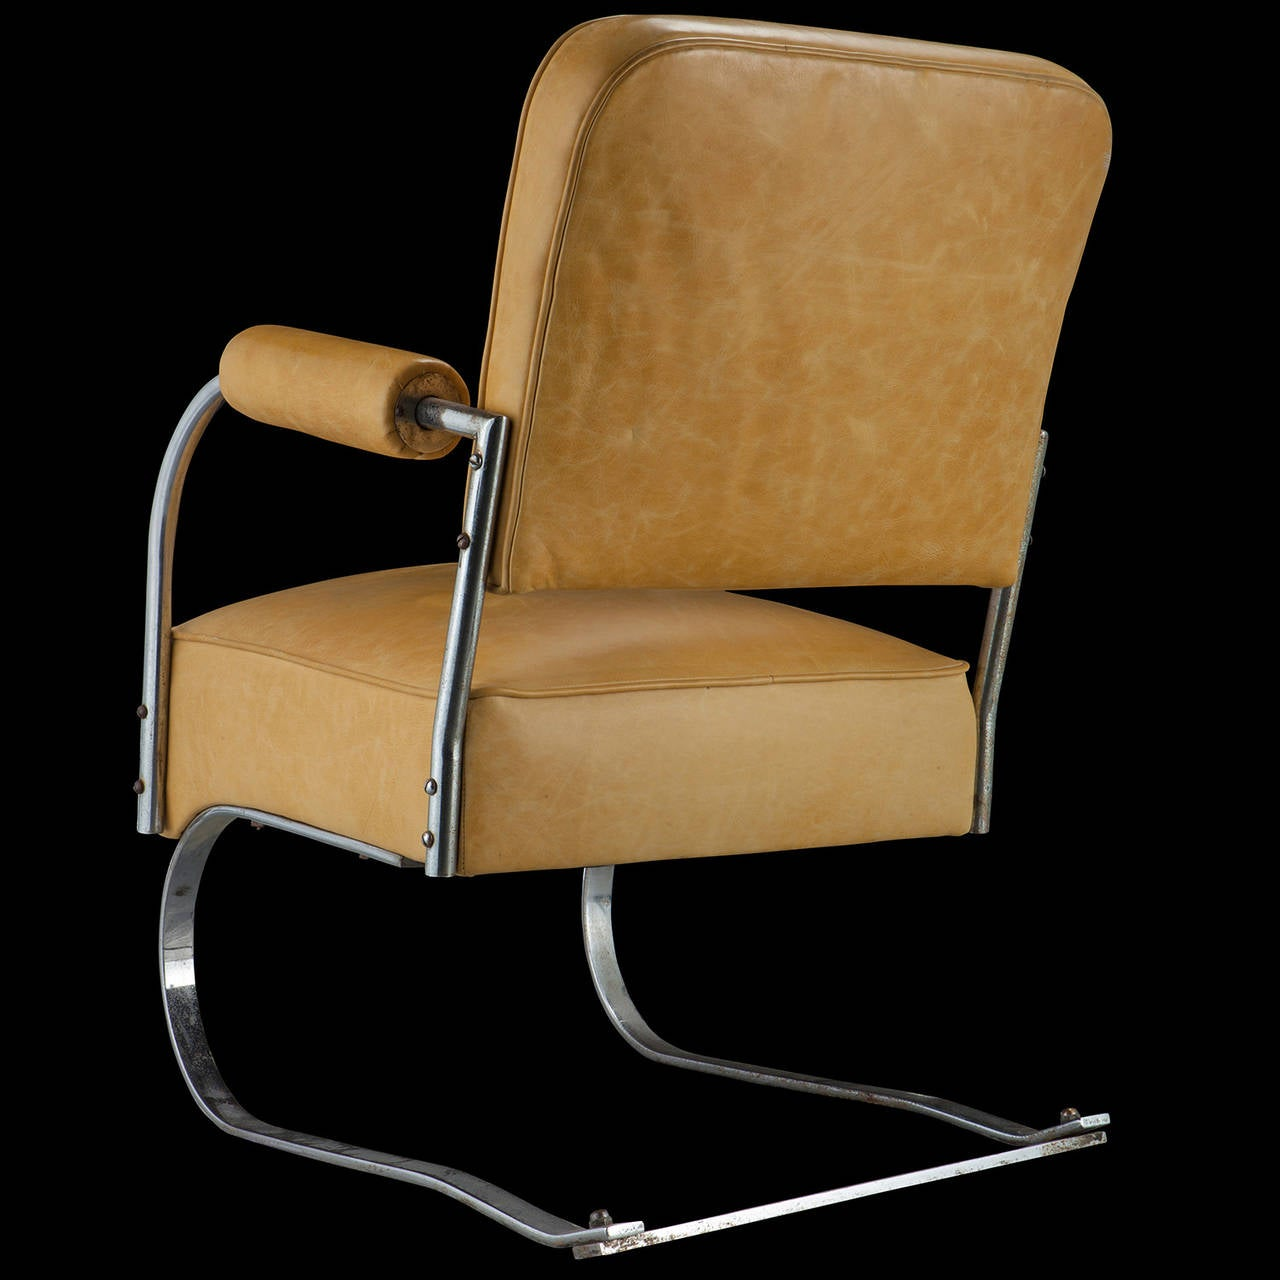 leather and chrome chairs chair design in karachi yellow cantilever image 4